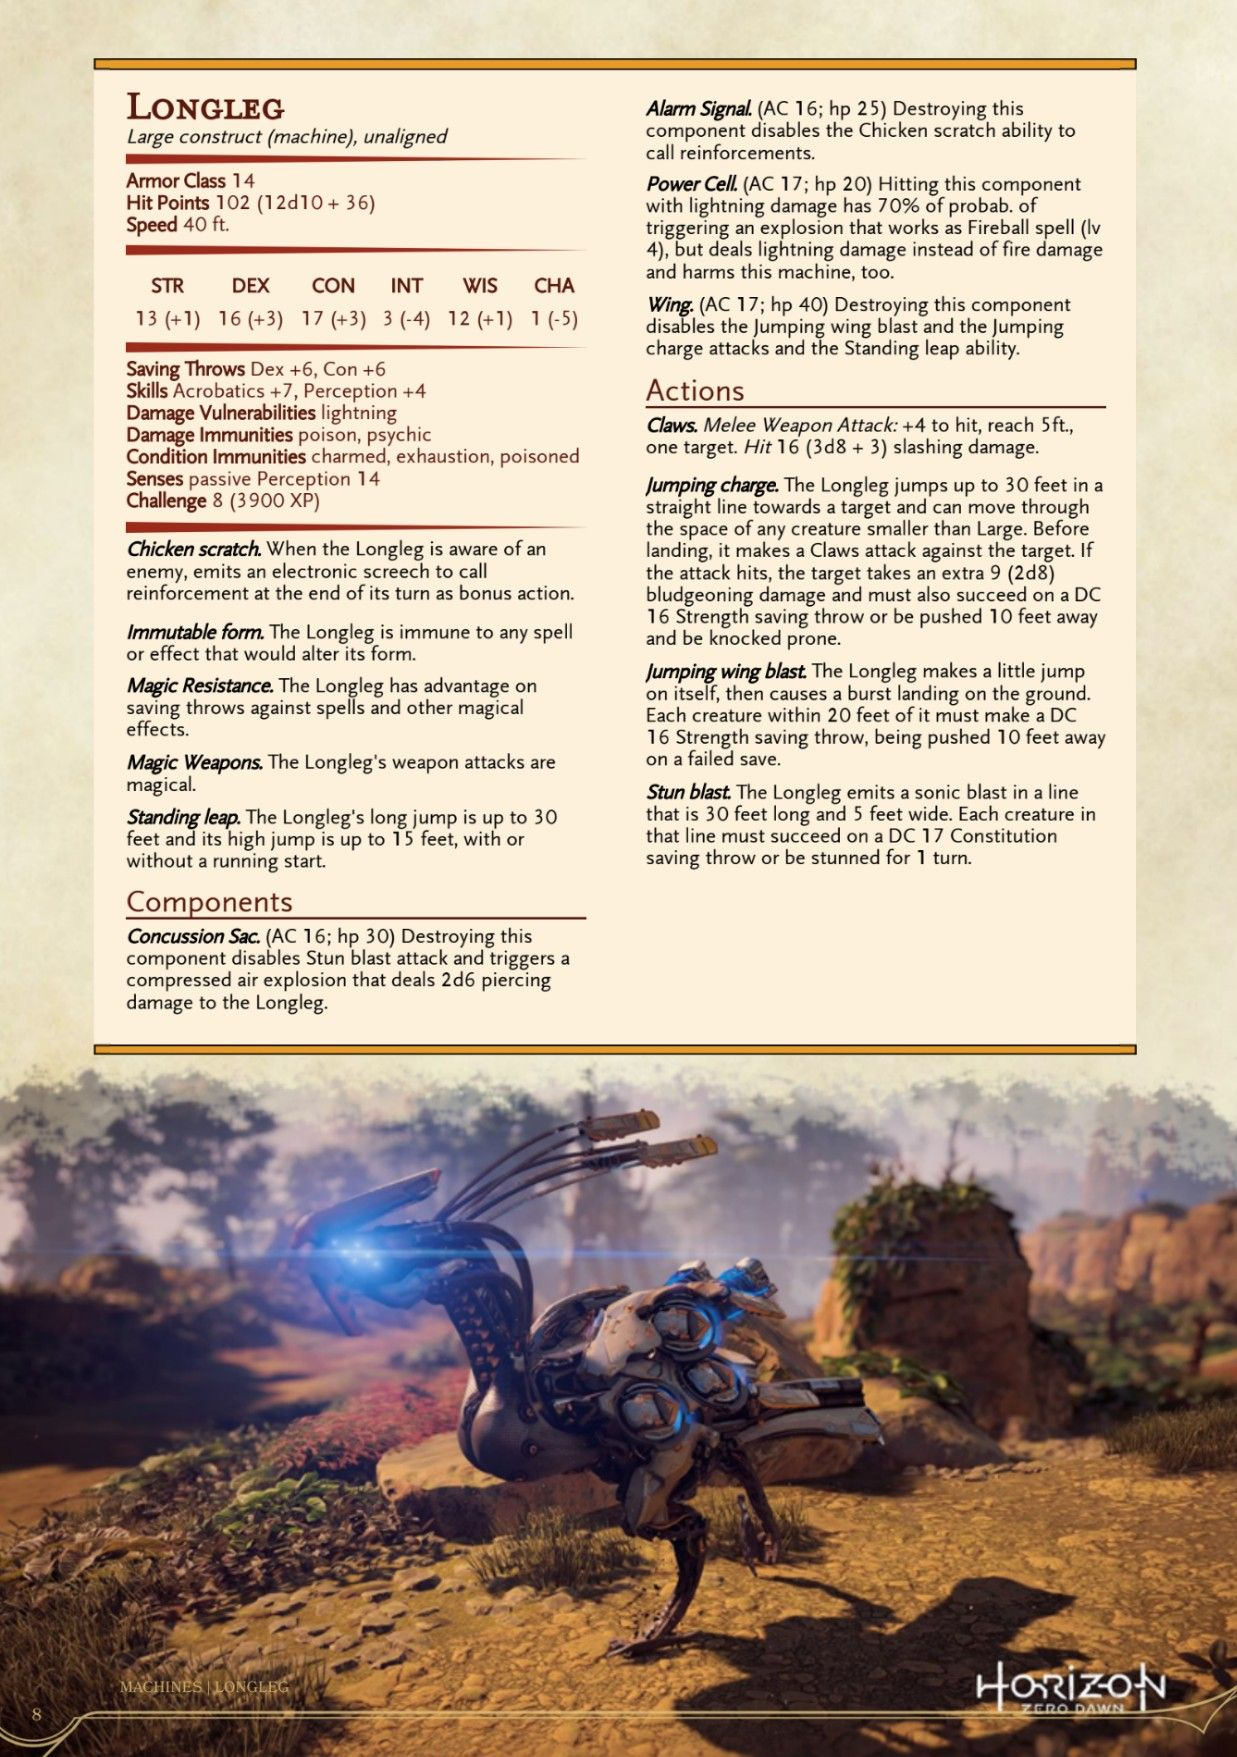 Pin by Andrew on D&D in 2019 | Dungeons, dragons 5e, Dnd monsters